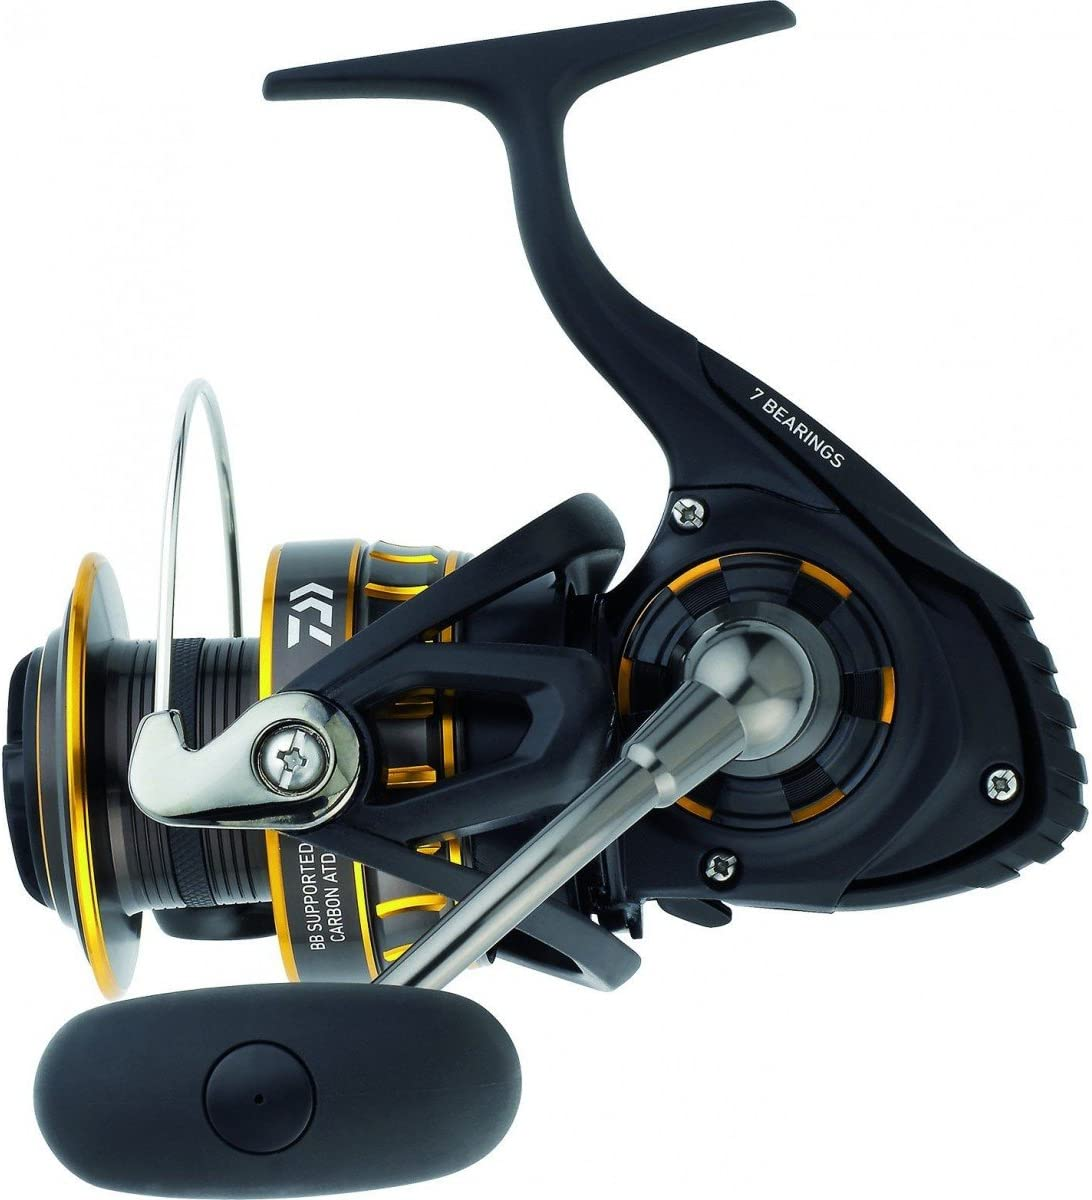 Daiwa BG Saltwater Spinning Fishing Reel